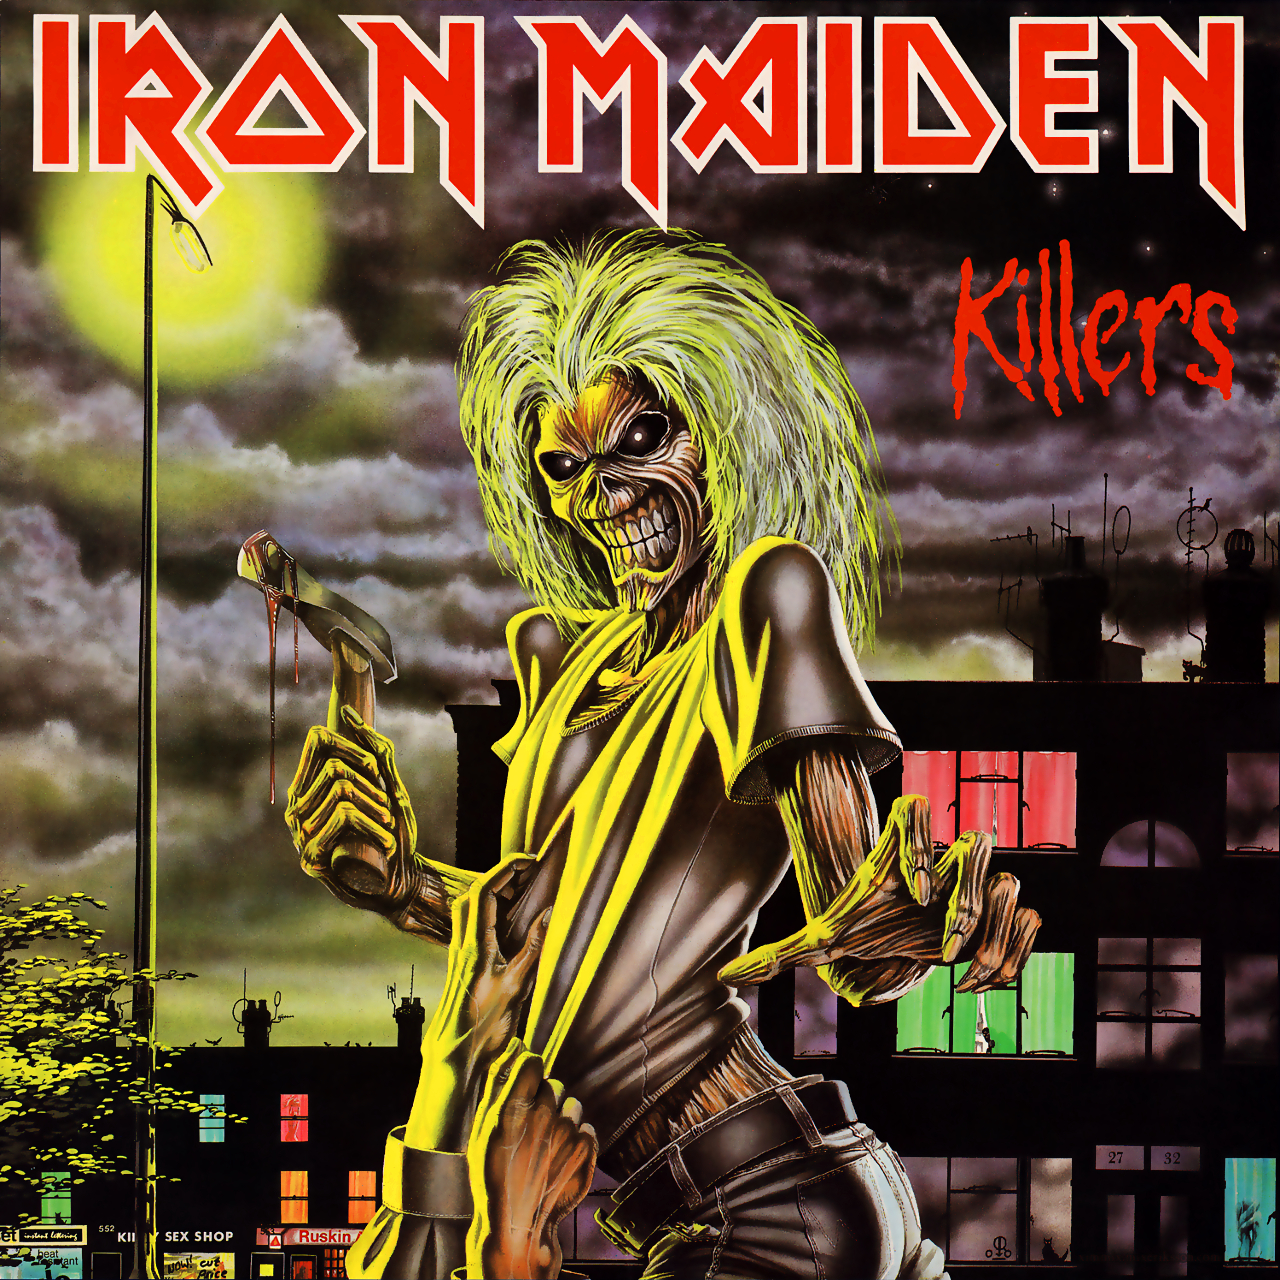 """Killers"" (1981), de Iron Maiden. Fuente: www.ironmaidenwallpaper.com"